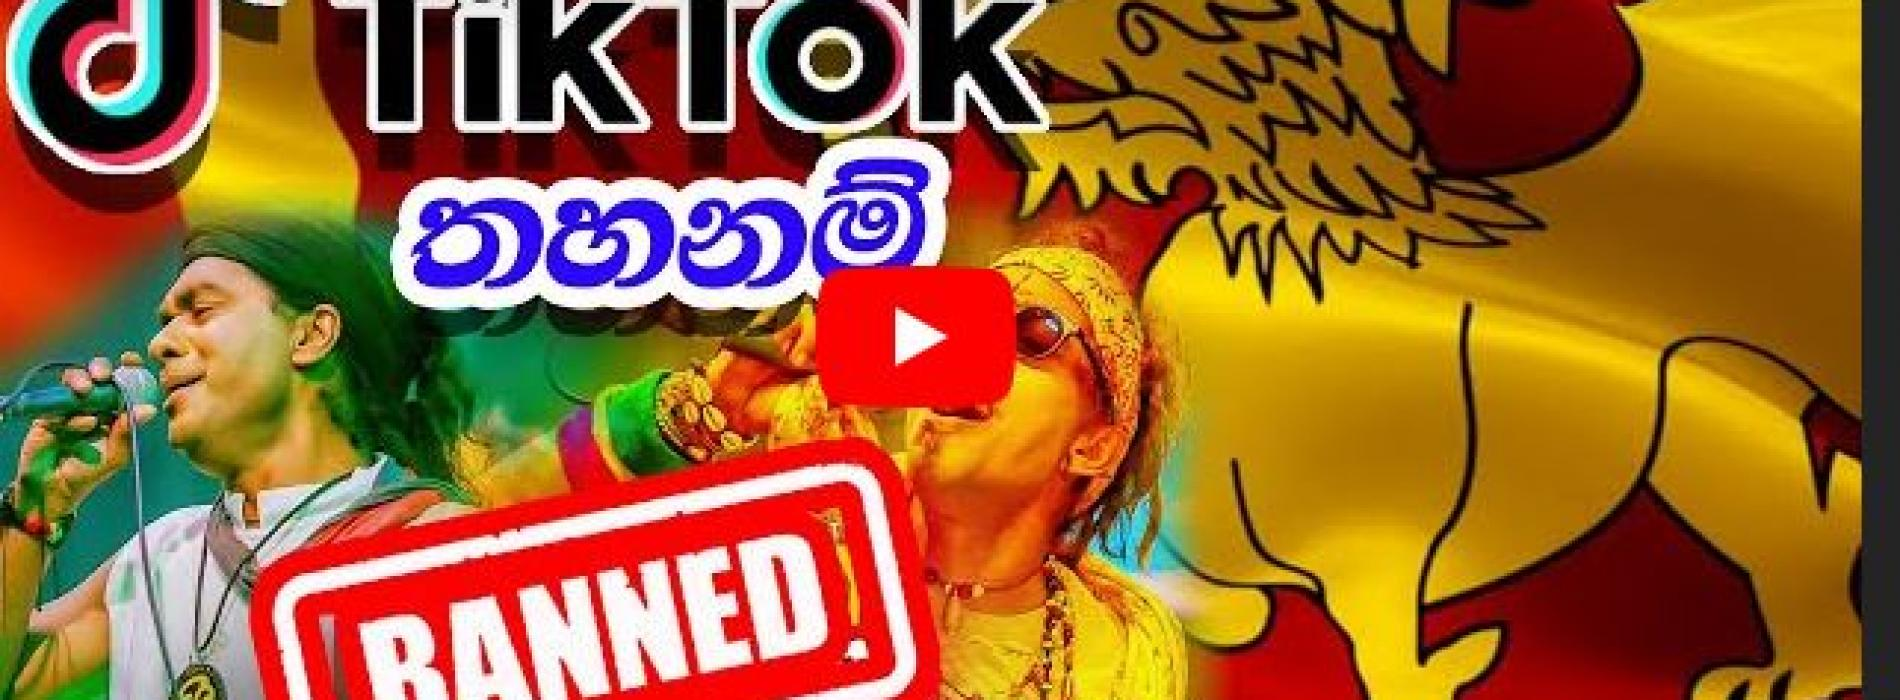 New Music : TIK TOK EKE – ටික් ටොක් එකේ – Official Music Video – Jaya Sri, Prageeth & Shiraz Rude Bwoy Lankan